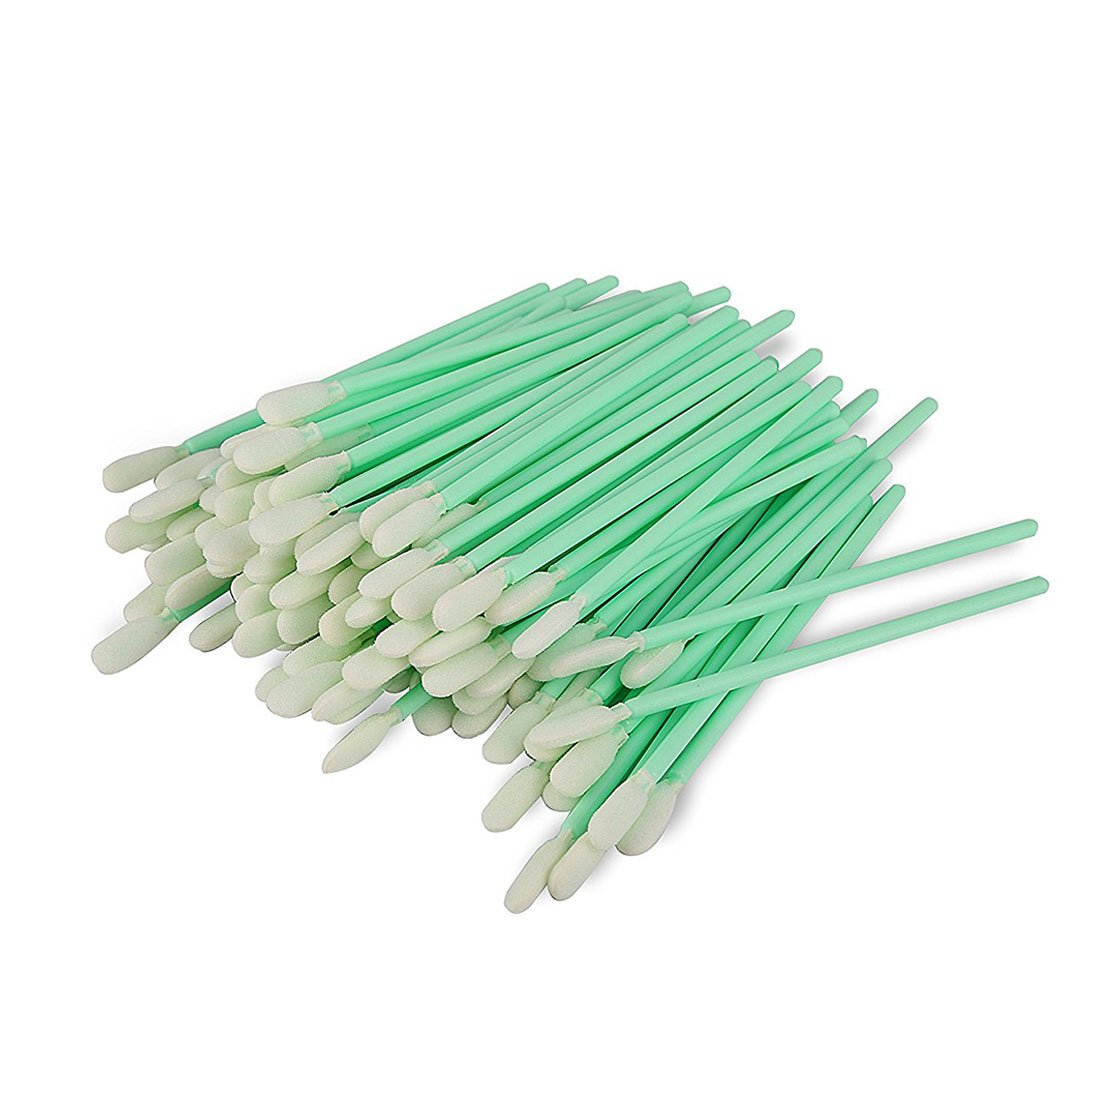 Cleanroom Swabs - SU-162VPCTS Cleaning Swabs Polyester Swab for Inkjet Printer, Printhead, Camera, Cleanroom, Optical Lens, Gun, Automotive Detailing, Optical Equipment Including 100 Pcs by Sanbo